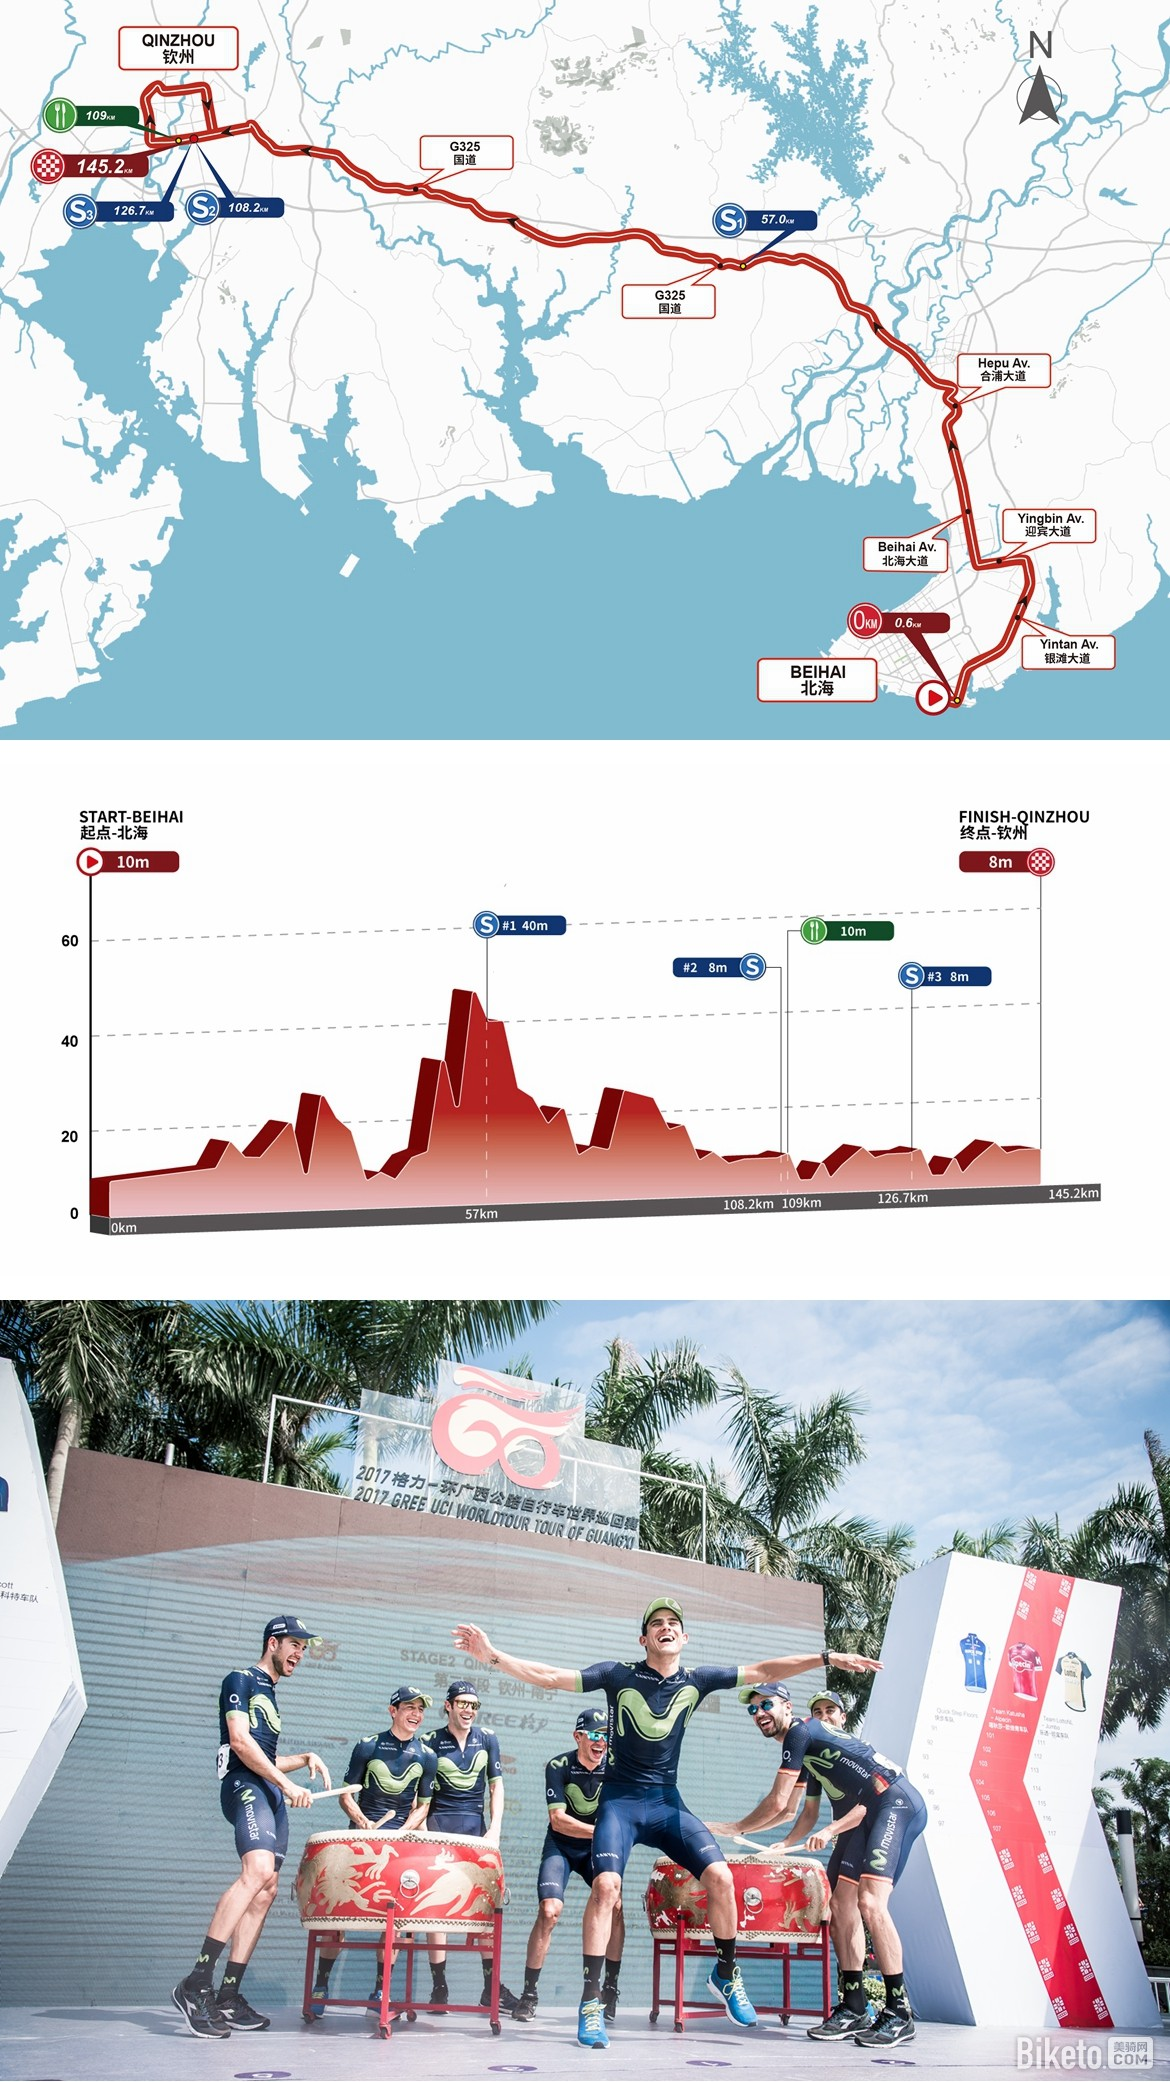 2018 tour of guangxi stage 2